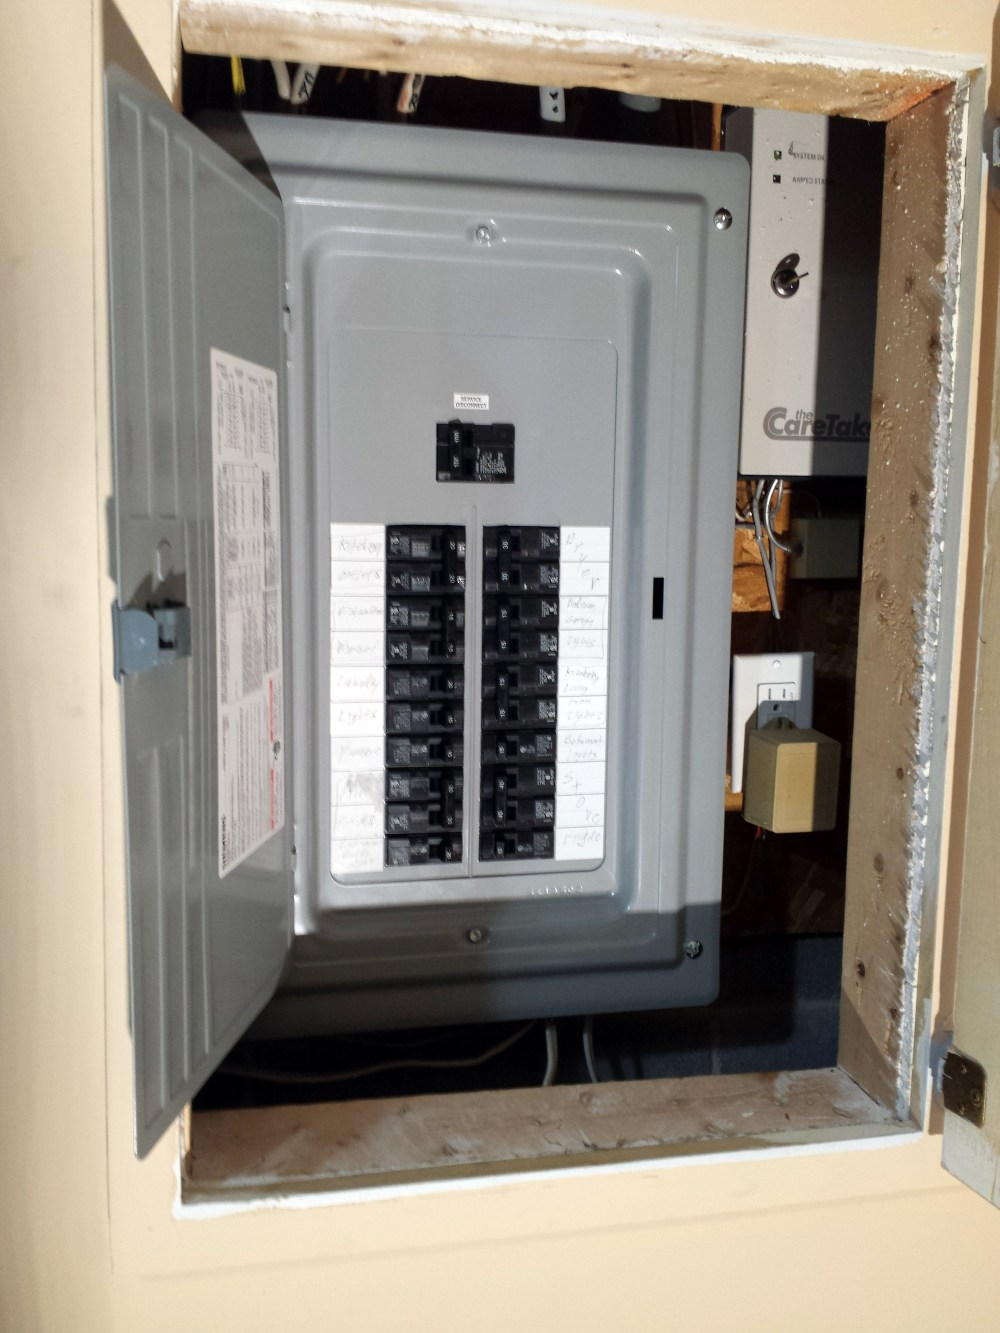 medium resolution of replace fuse box replace fpe breakers total electric home fuse box replacement cost 100 amp fuse